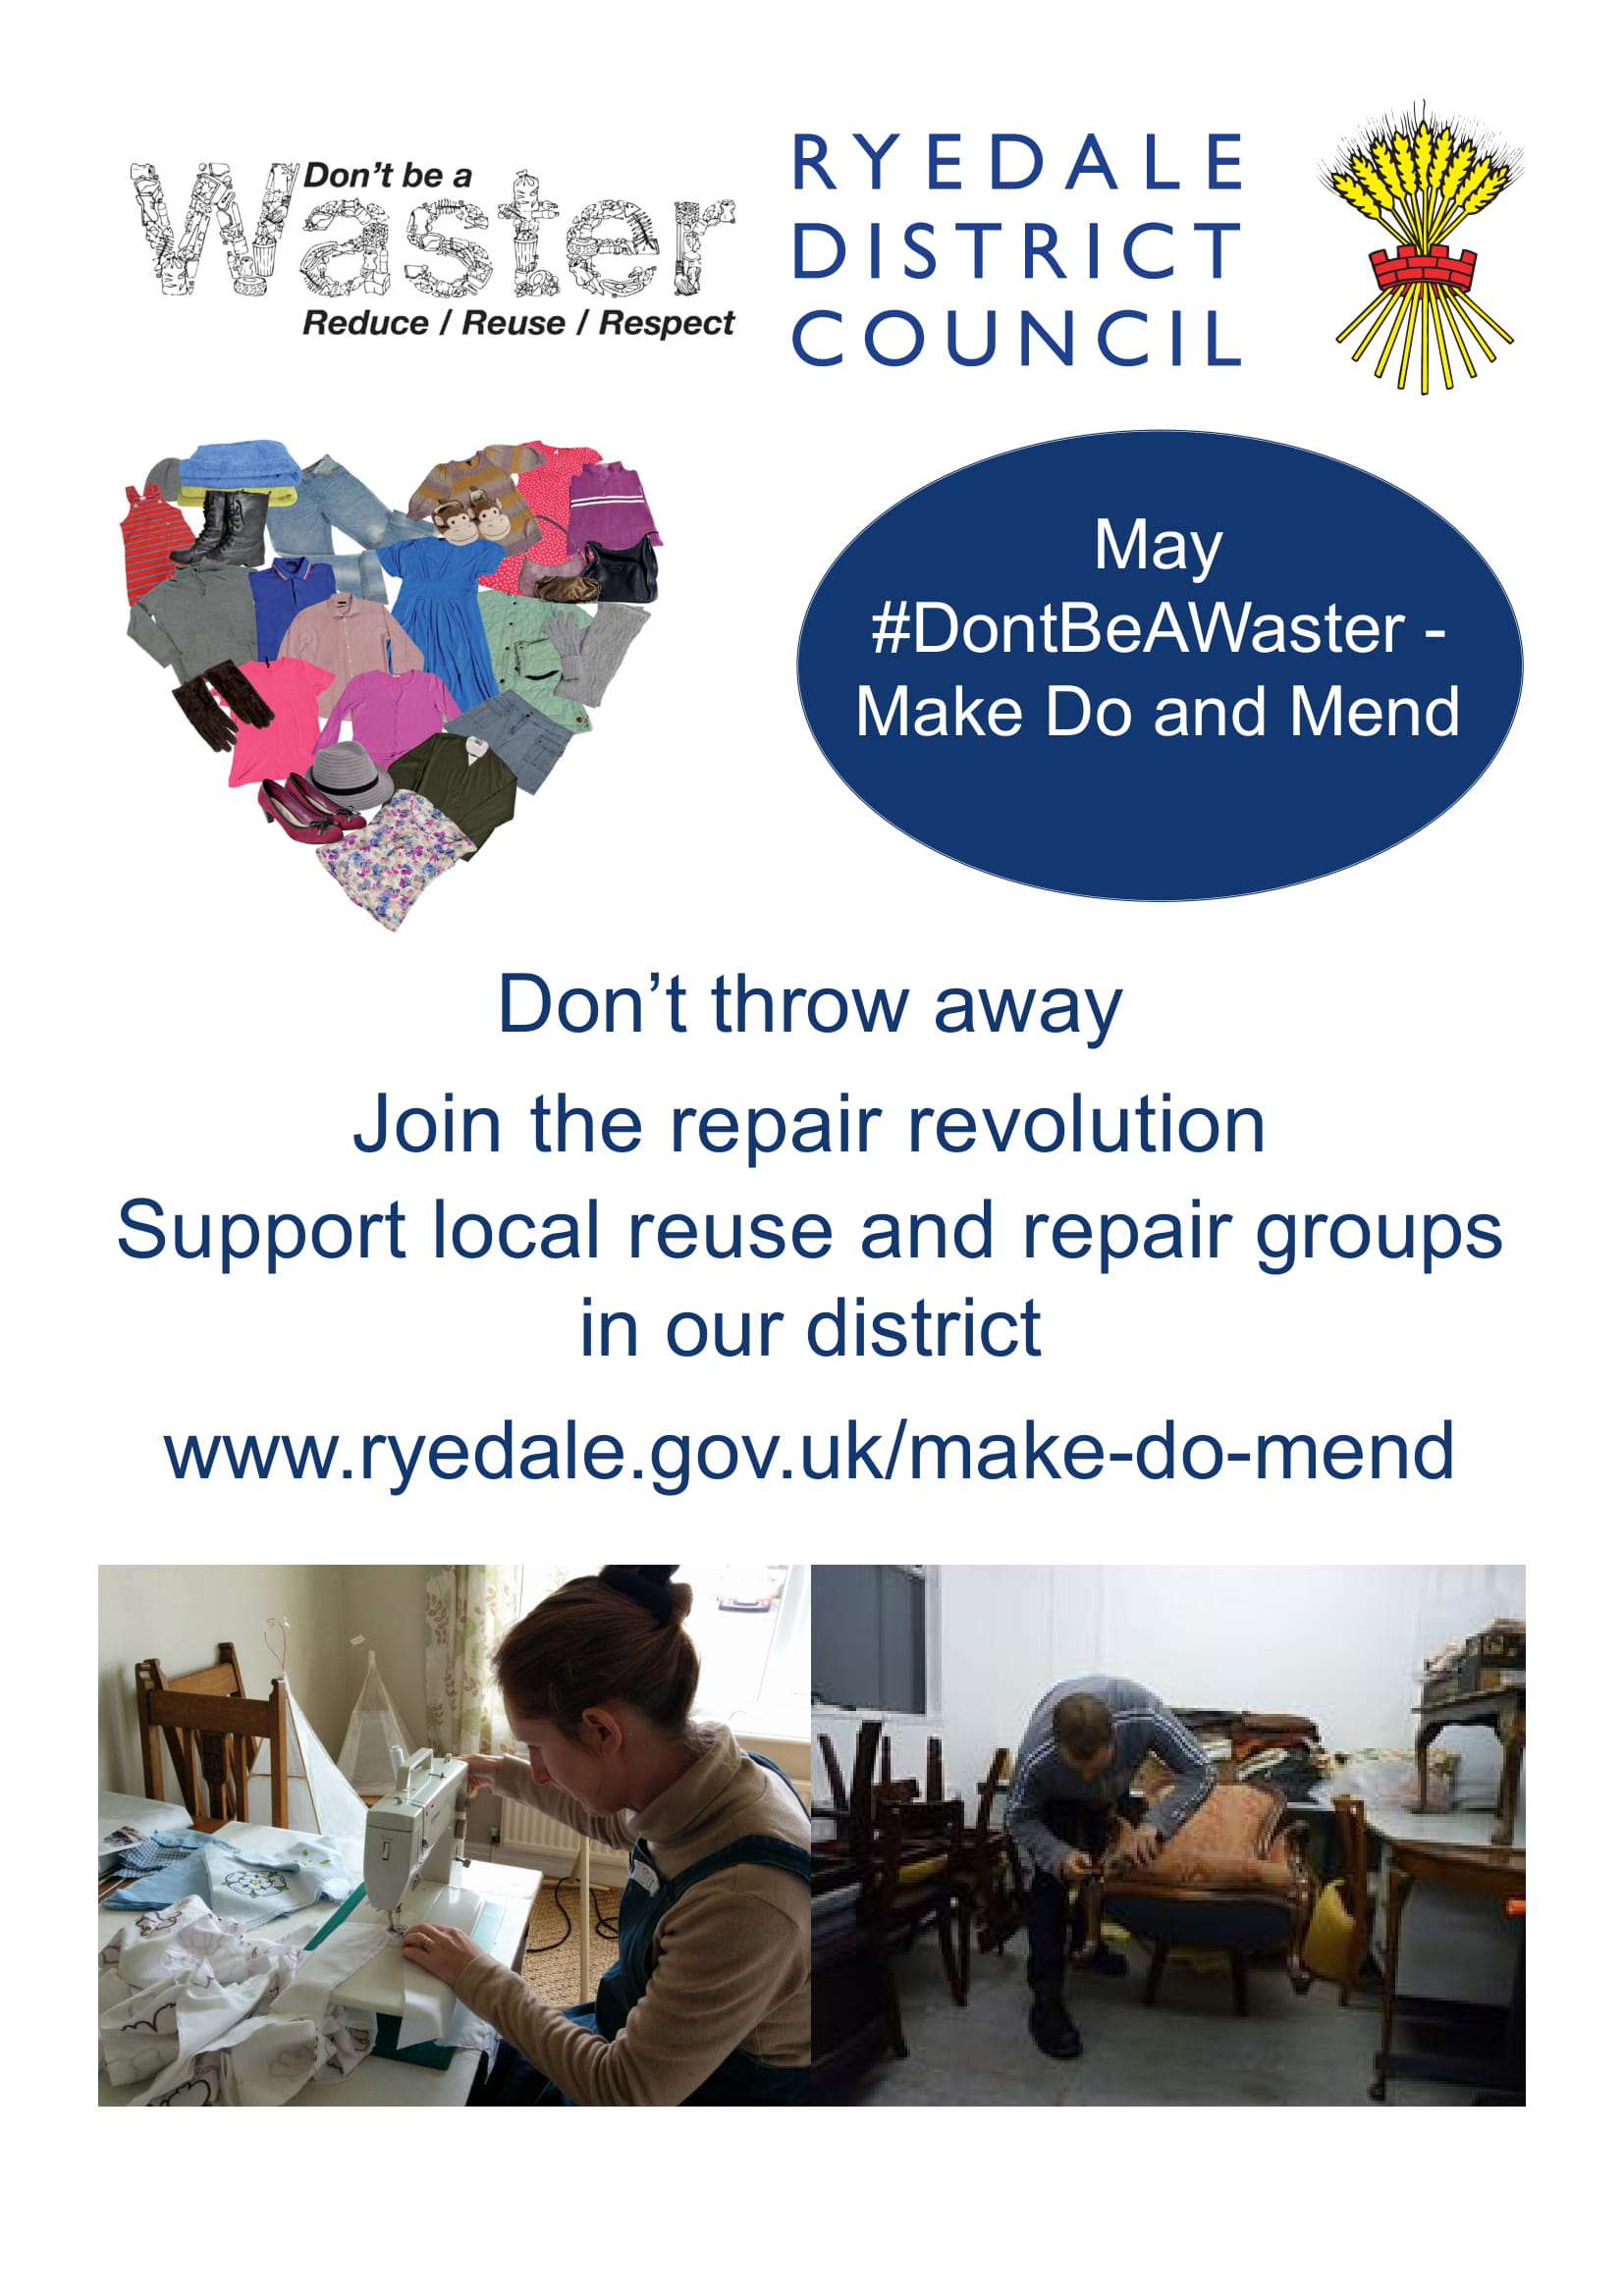 RyedaleDC-DontBeAWaster-May-Make-Do-Mend